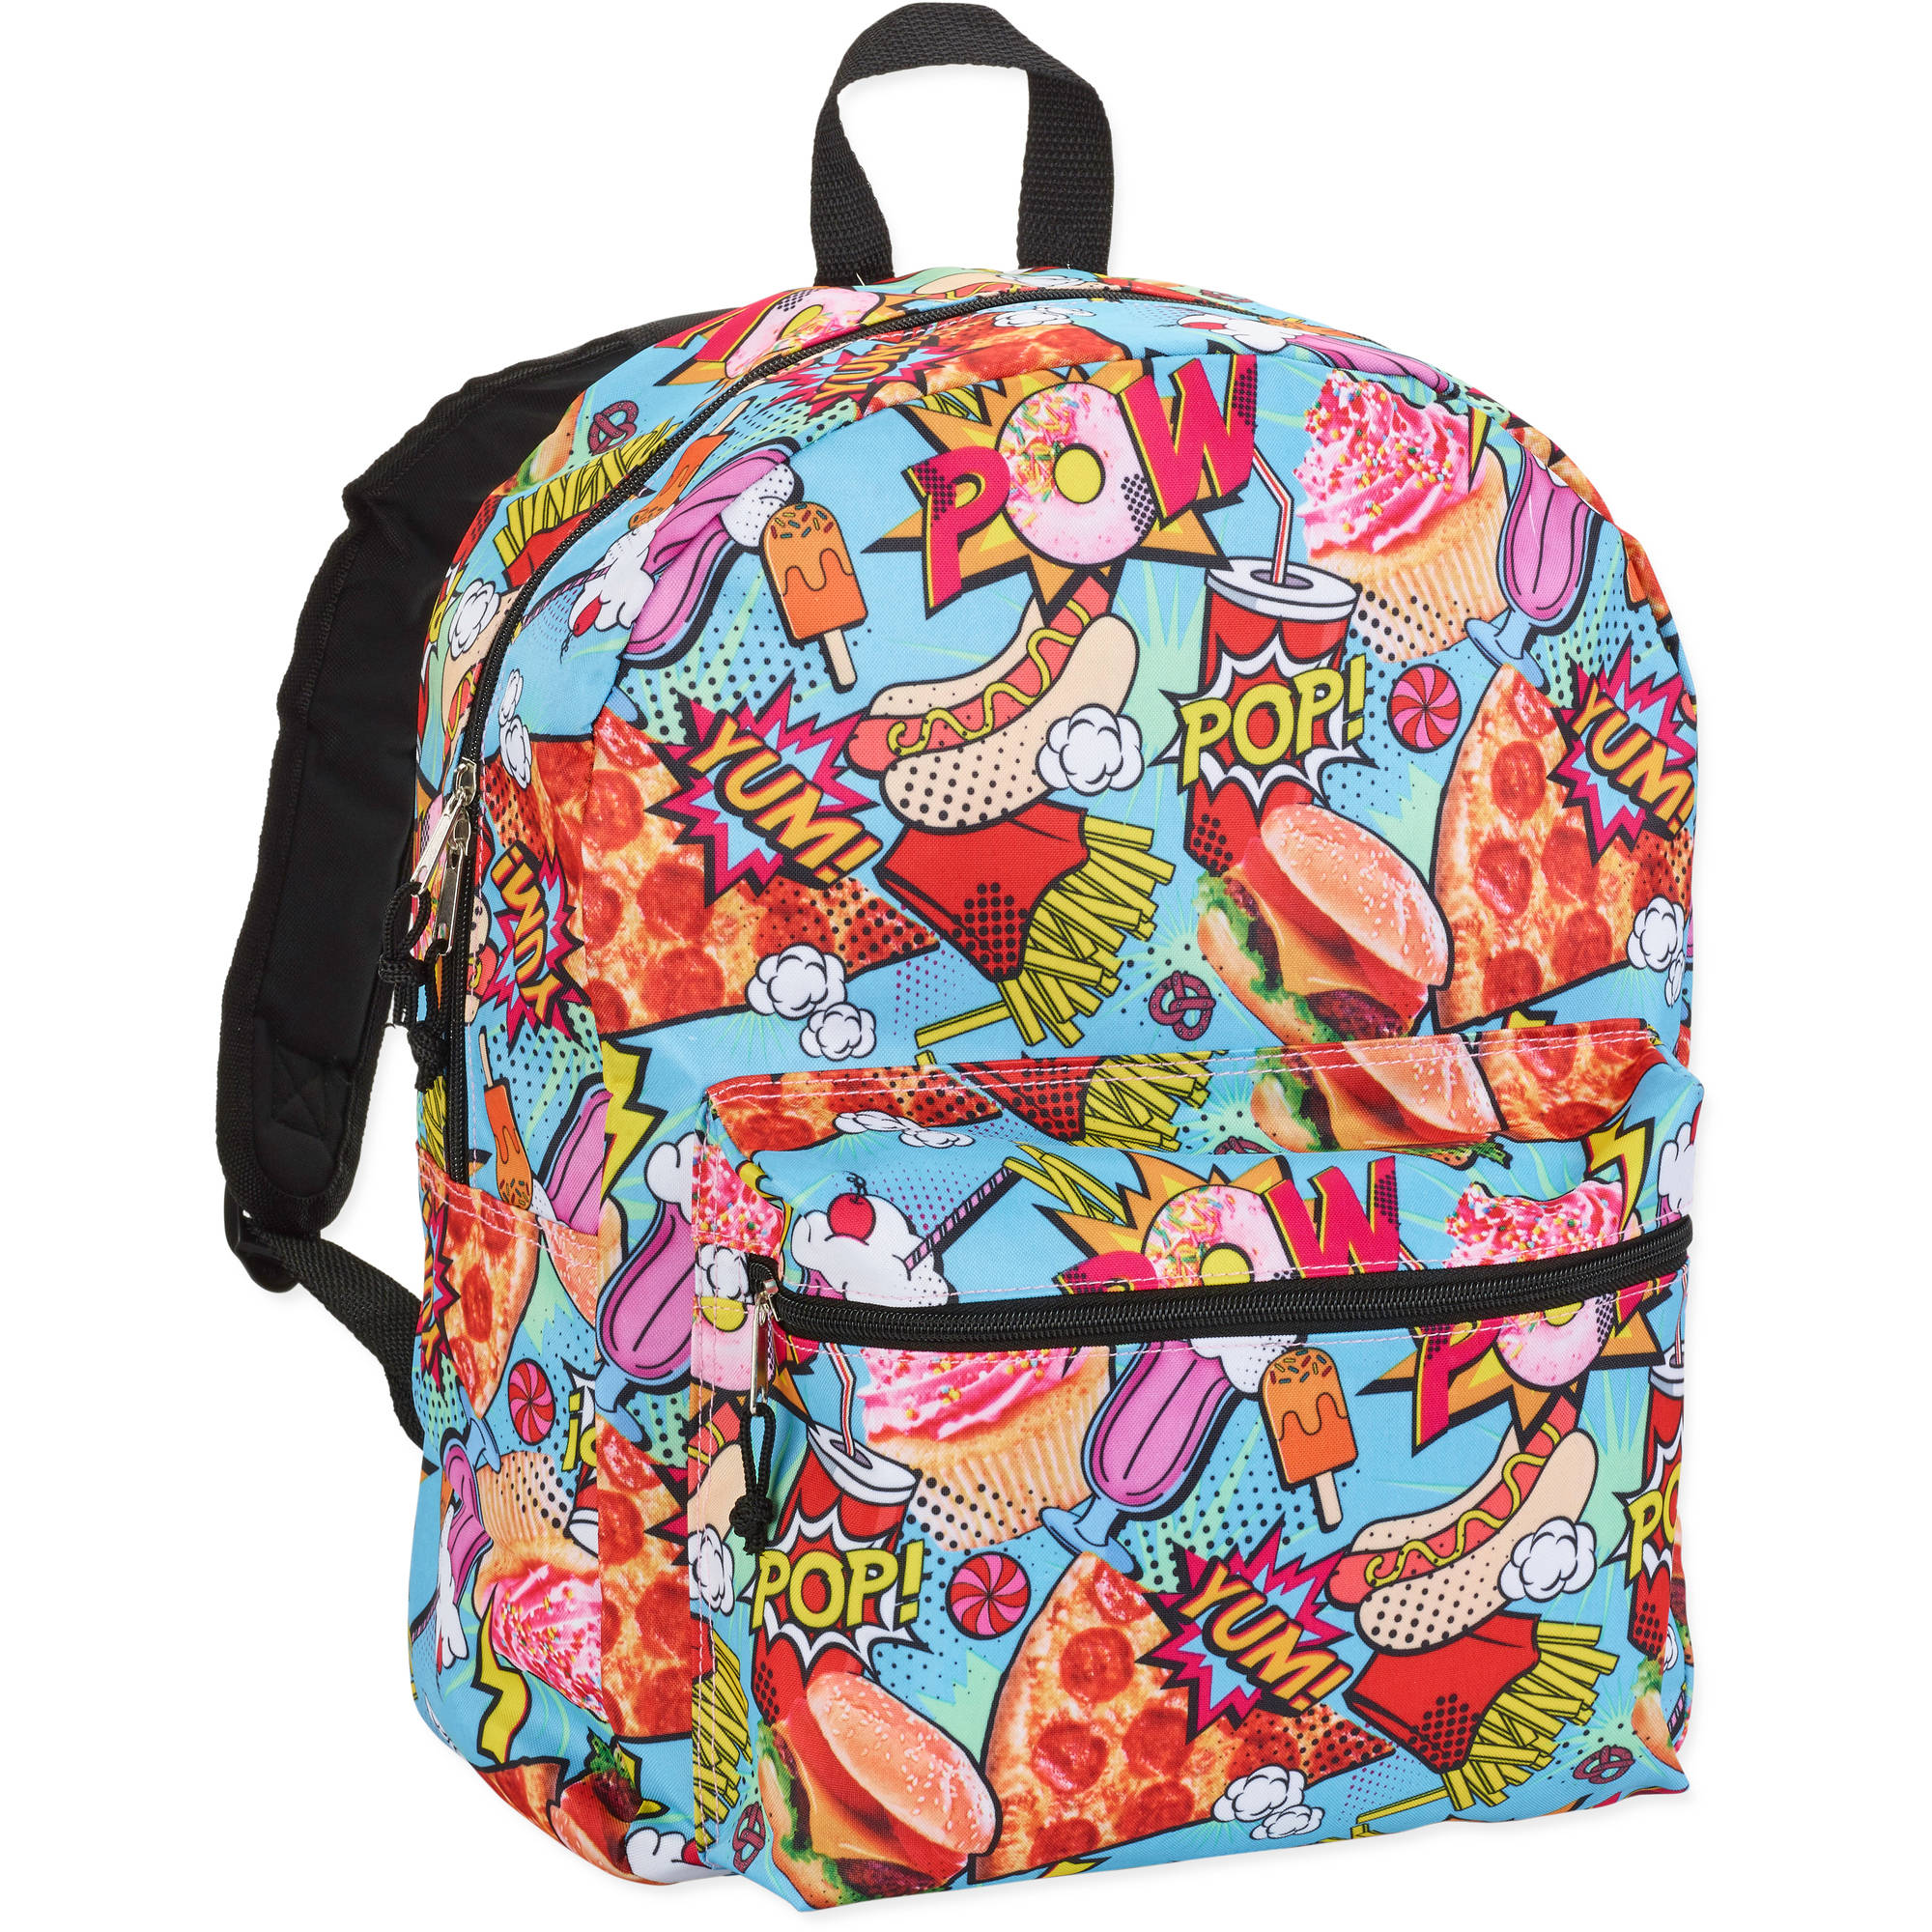 Nail Head Snack Pop Kids' Backpack